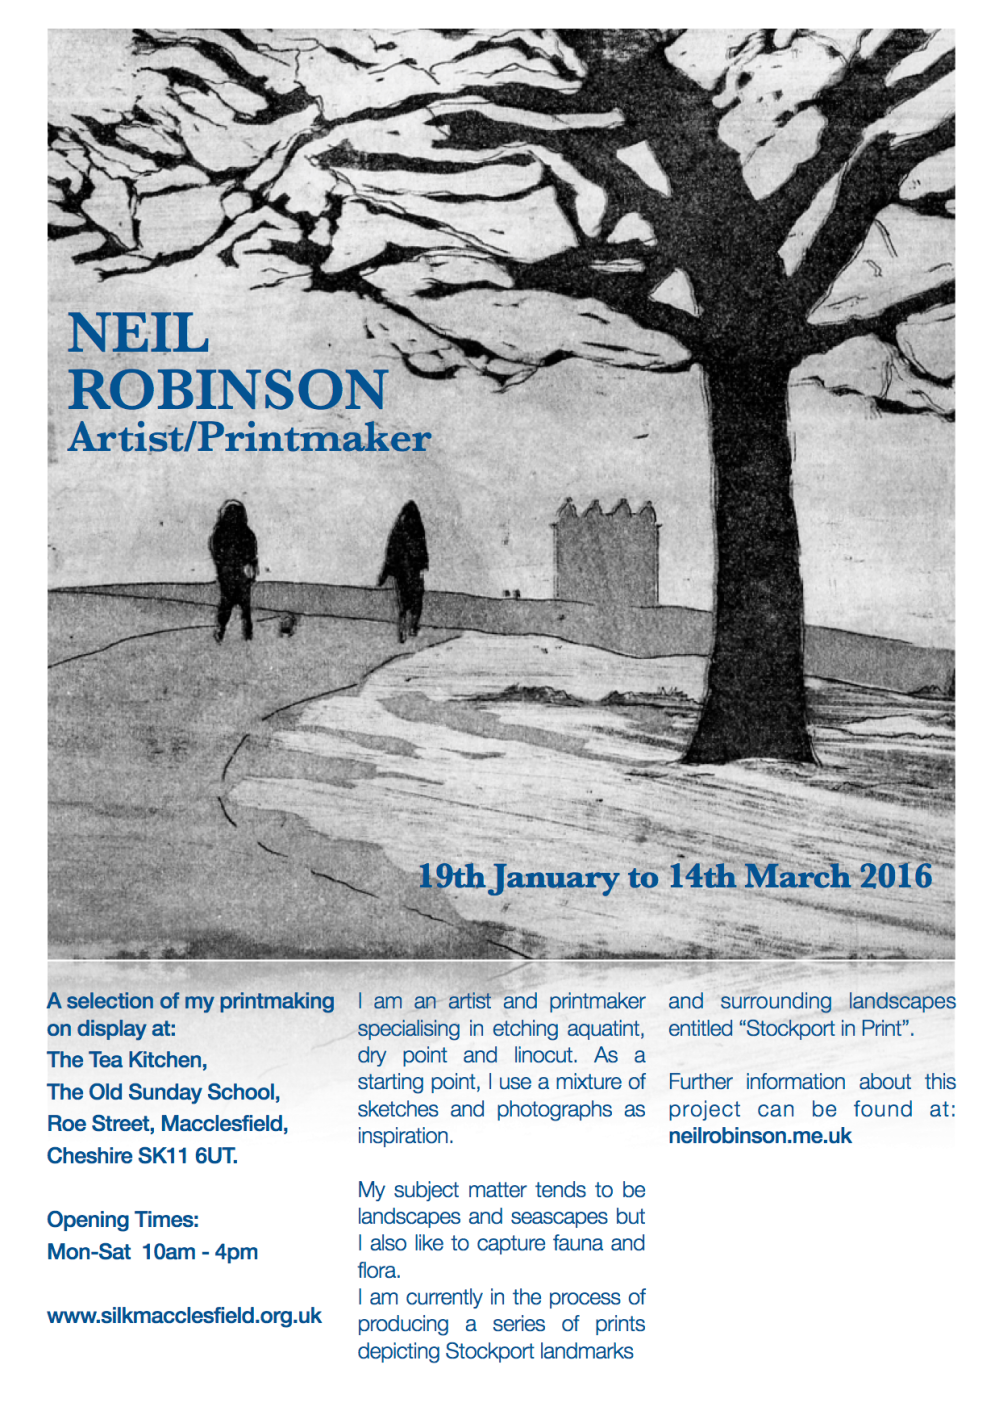 I have a mini exhibition of my printmaking on display at The Tea Kitchen, The Old Sunday School, Roe Street, Macclesfield from Tuesday 19th January to Monday 14th March 2016.